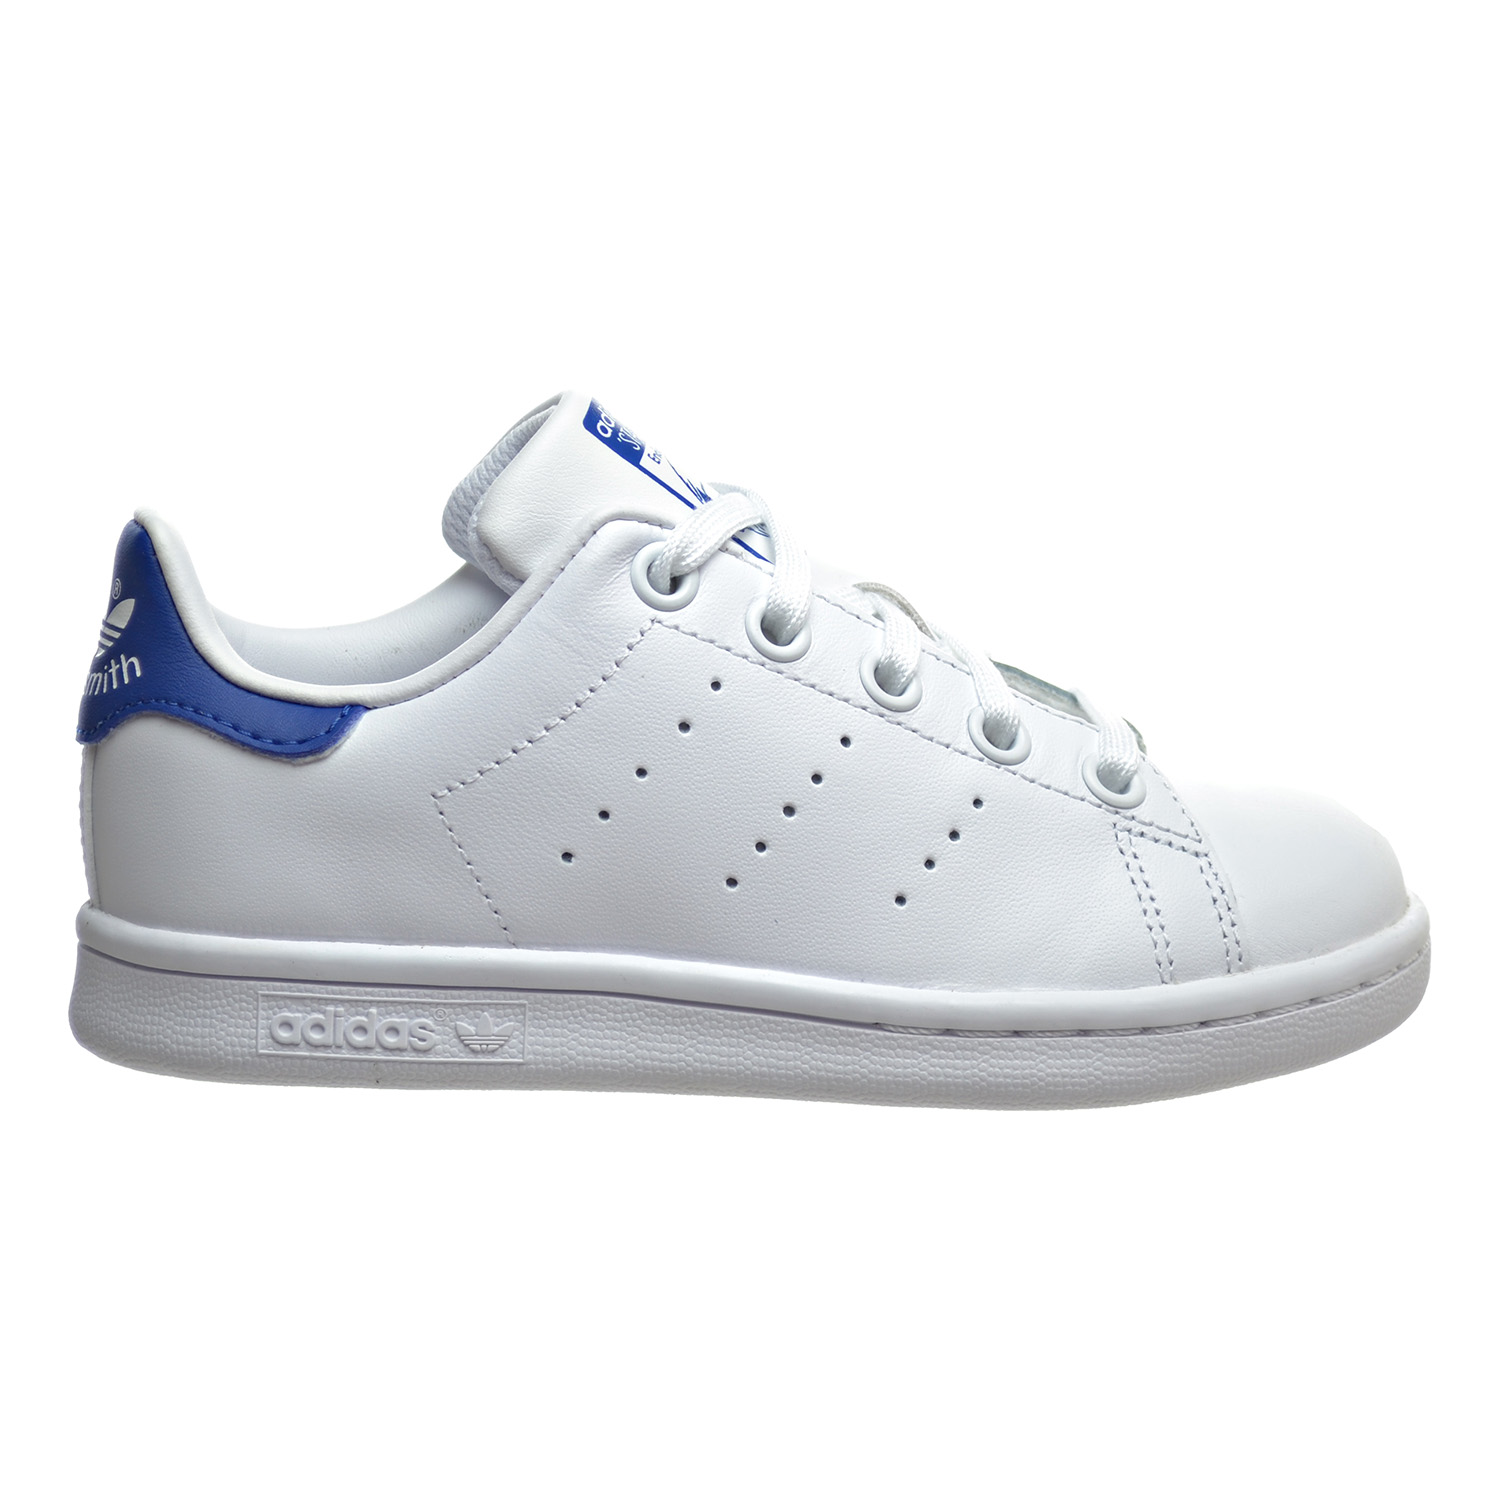 Adidas Stan Smith C Little Kids Shoes